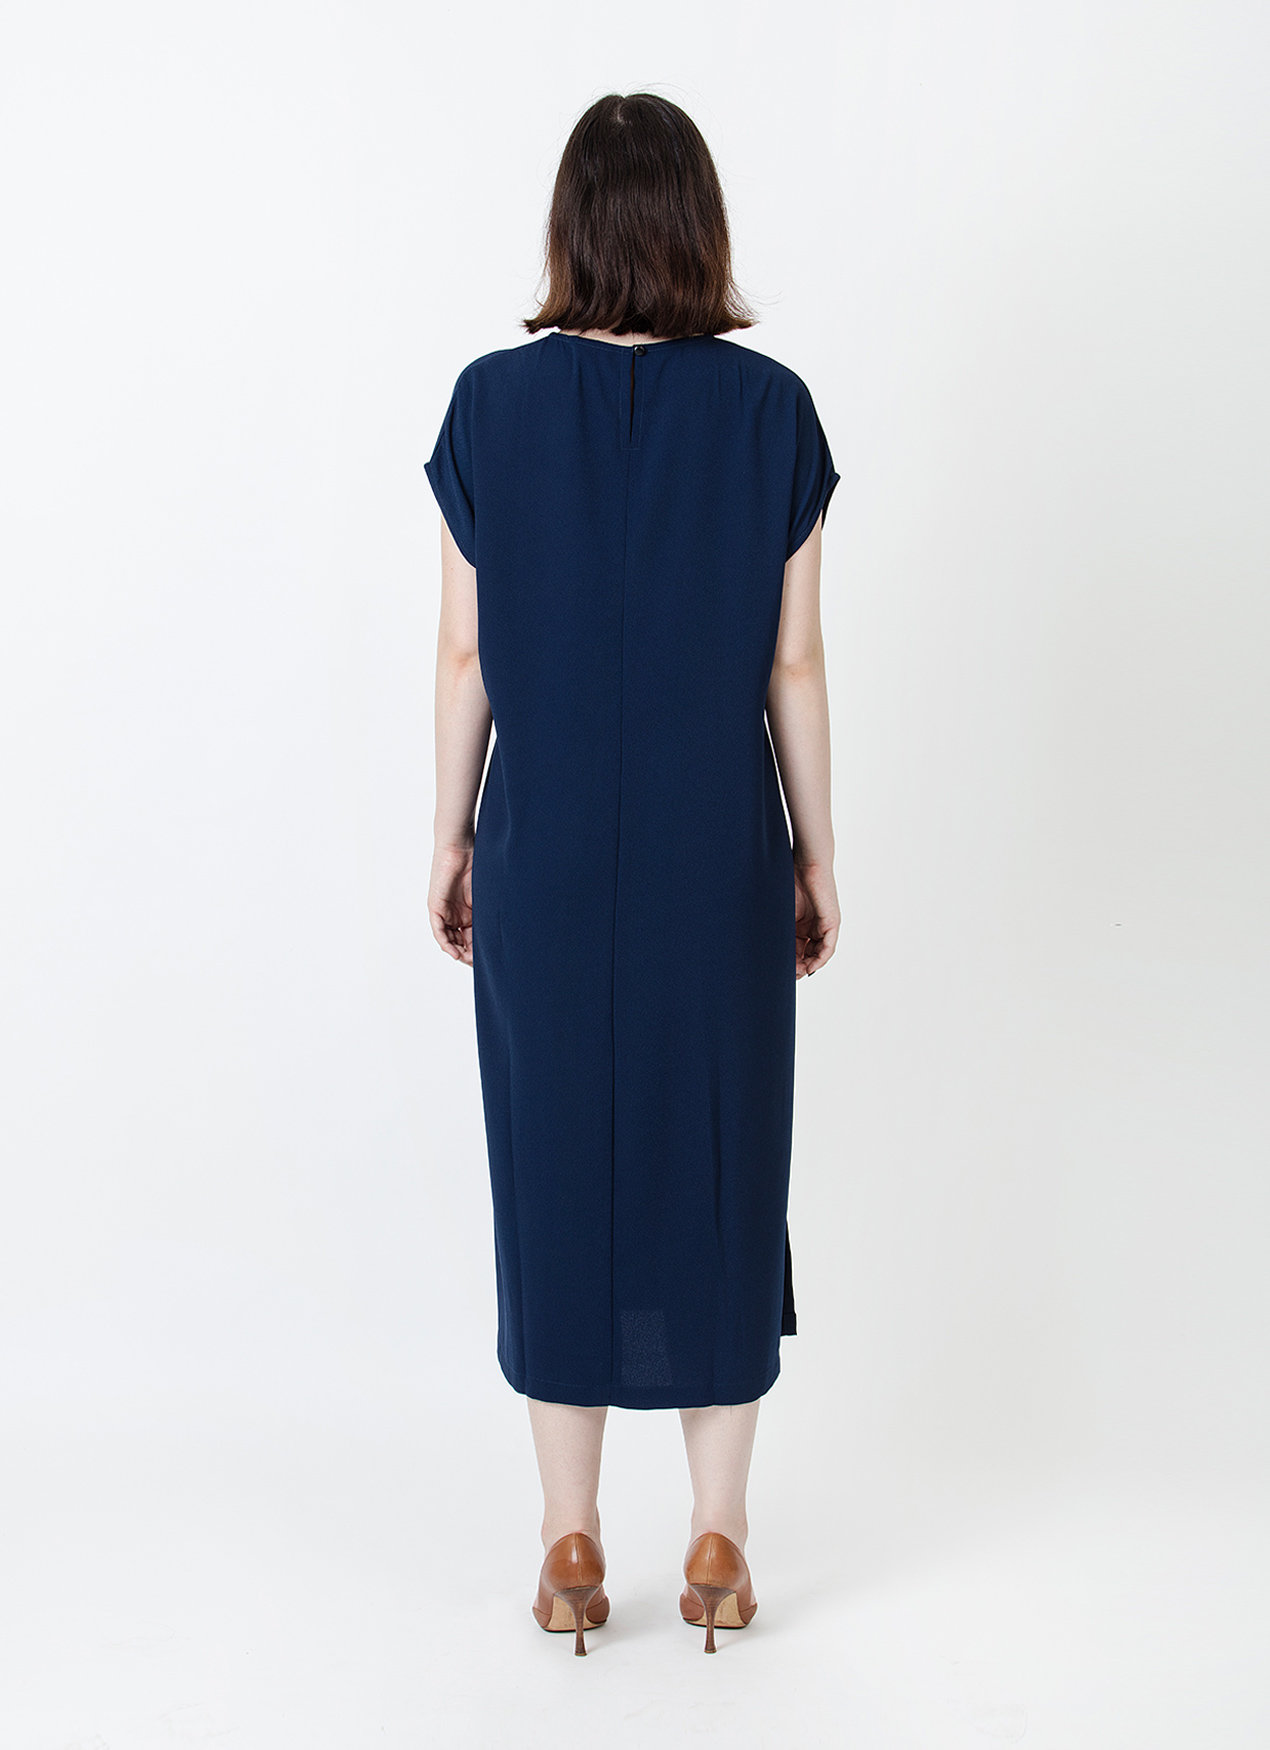 Wastu Parachute Dress - Navy